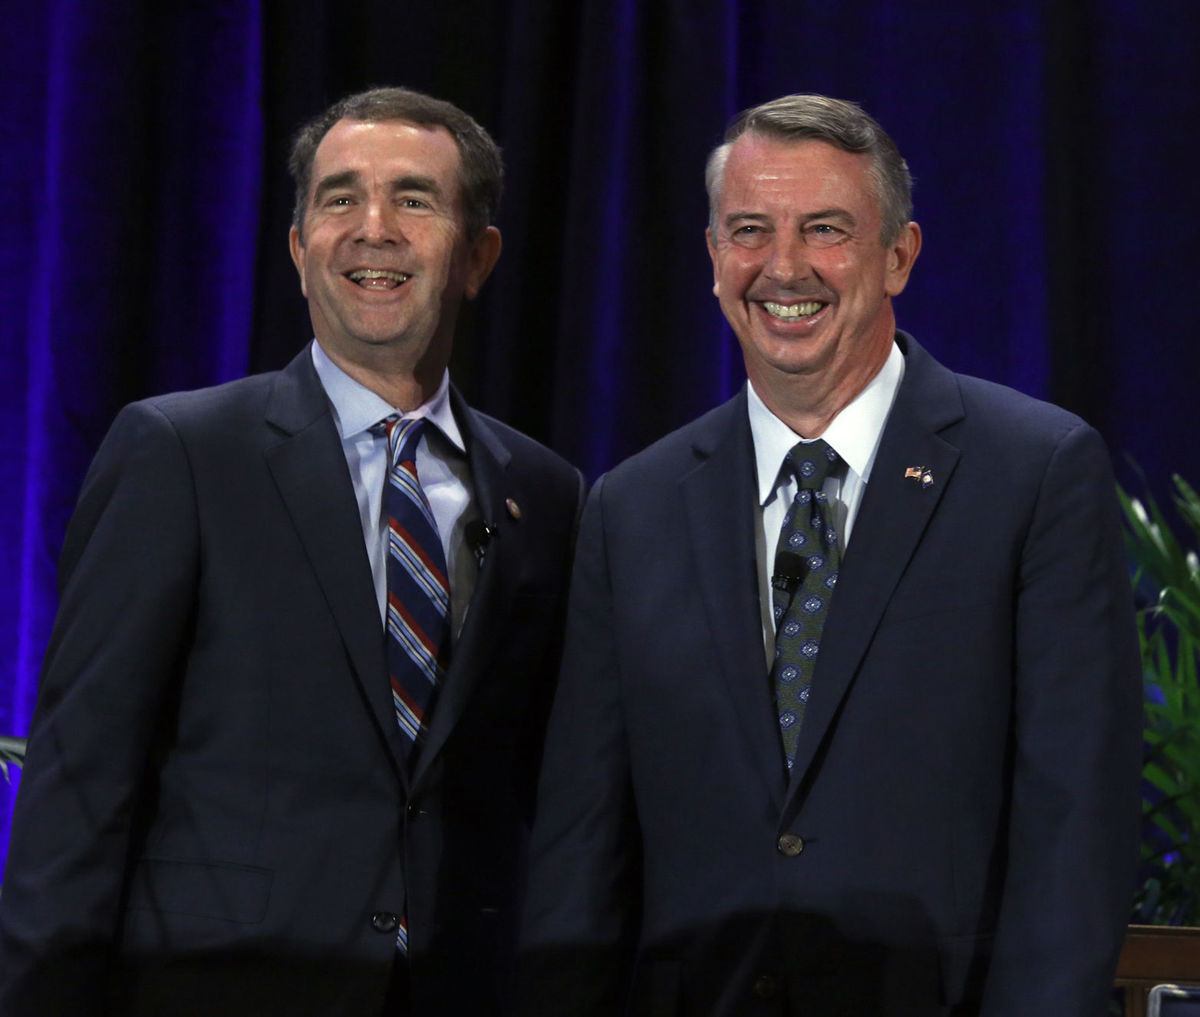 Northam, Gillespie set to spar in 2nd debate